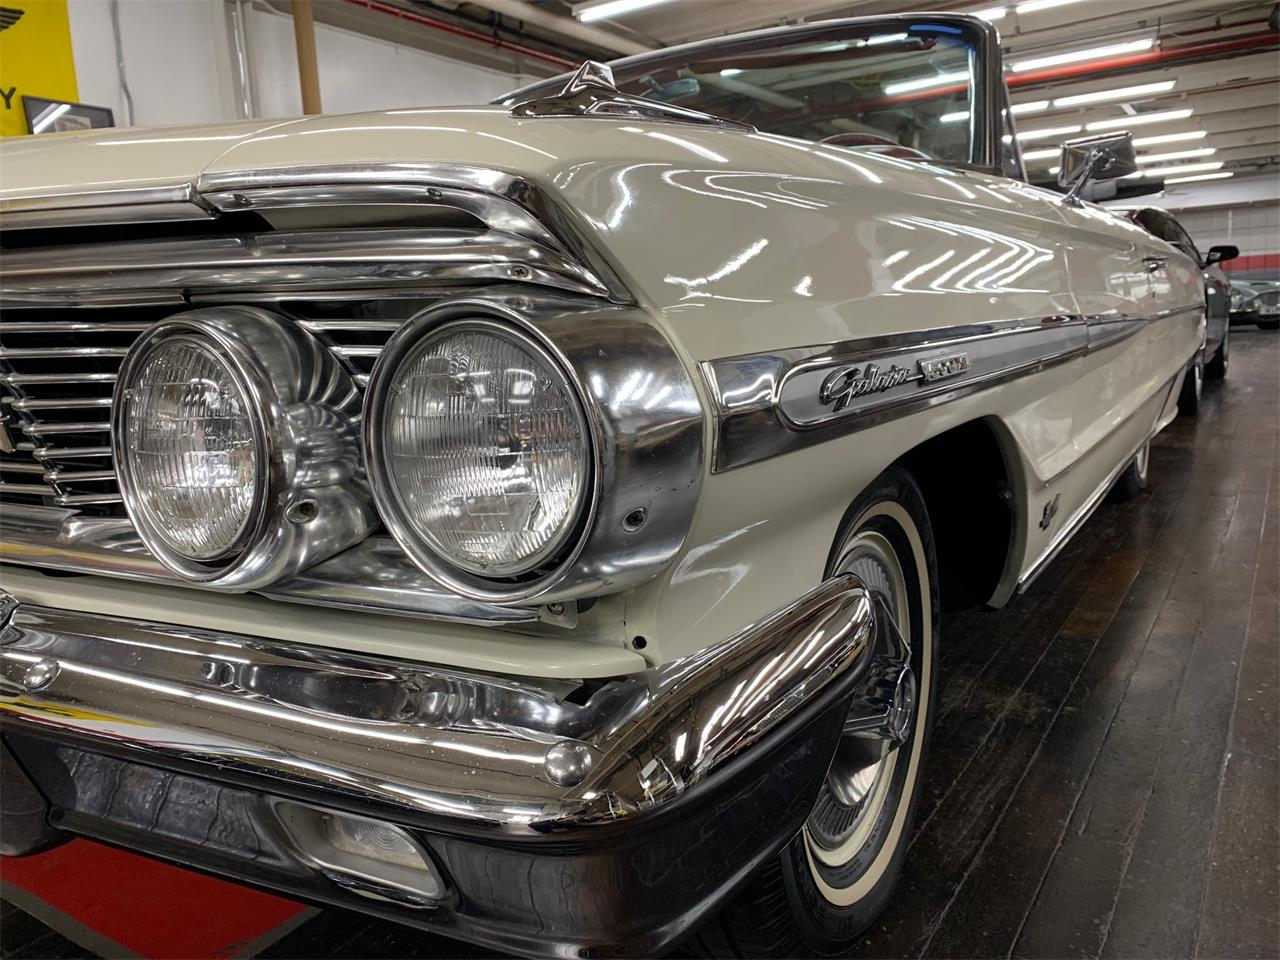 1964 Ford Galaxie 500 XL (CC-1296912) for sale in BRIDGEPORT, Connecticut